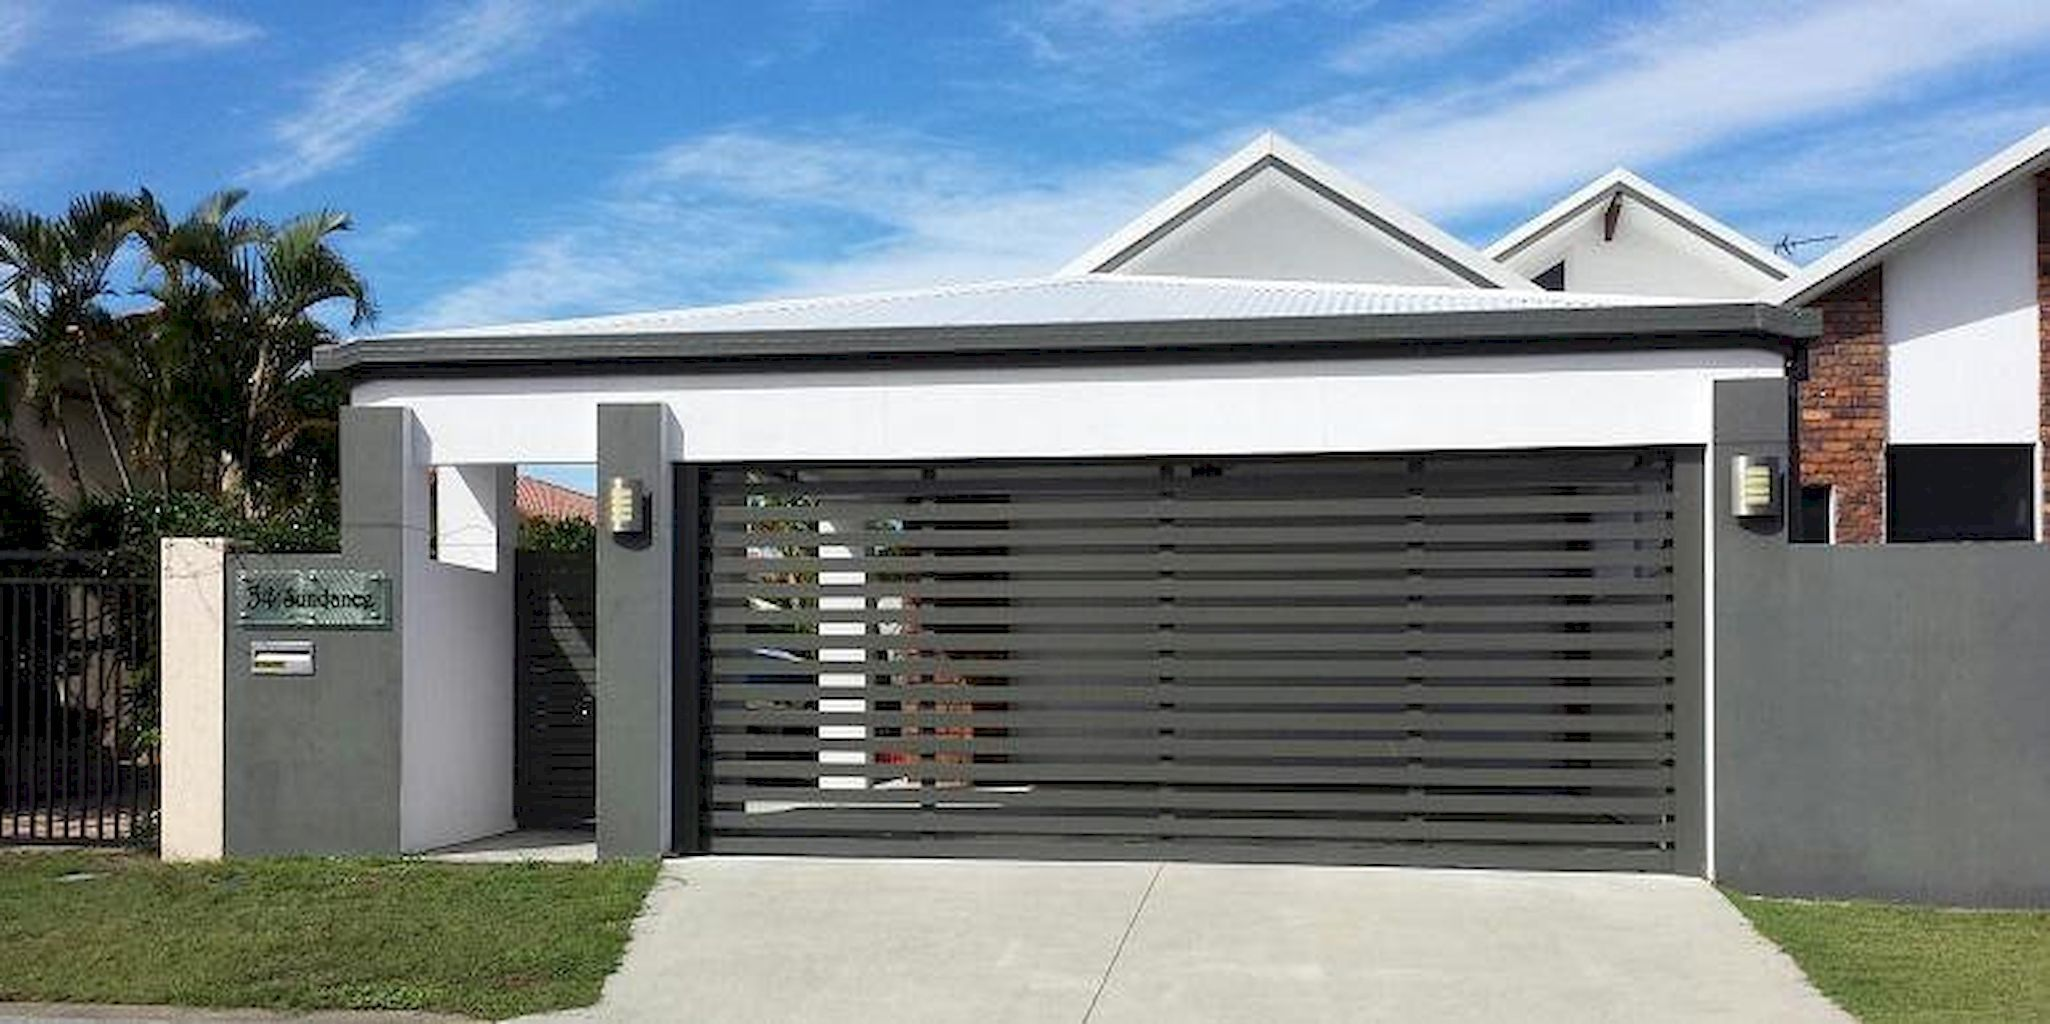 55 adorable modern carports garage designs ideas modern carport carport garage and garage design. Black Bedroom Furniture Sets. Home Design Ideas